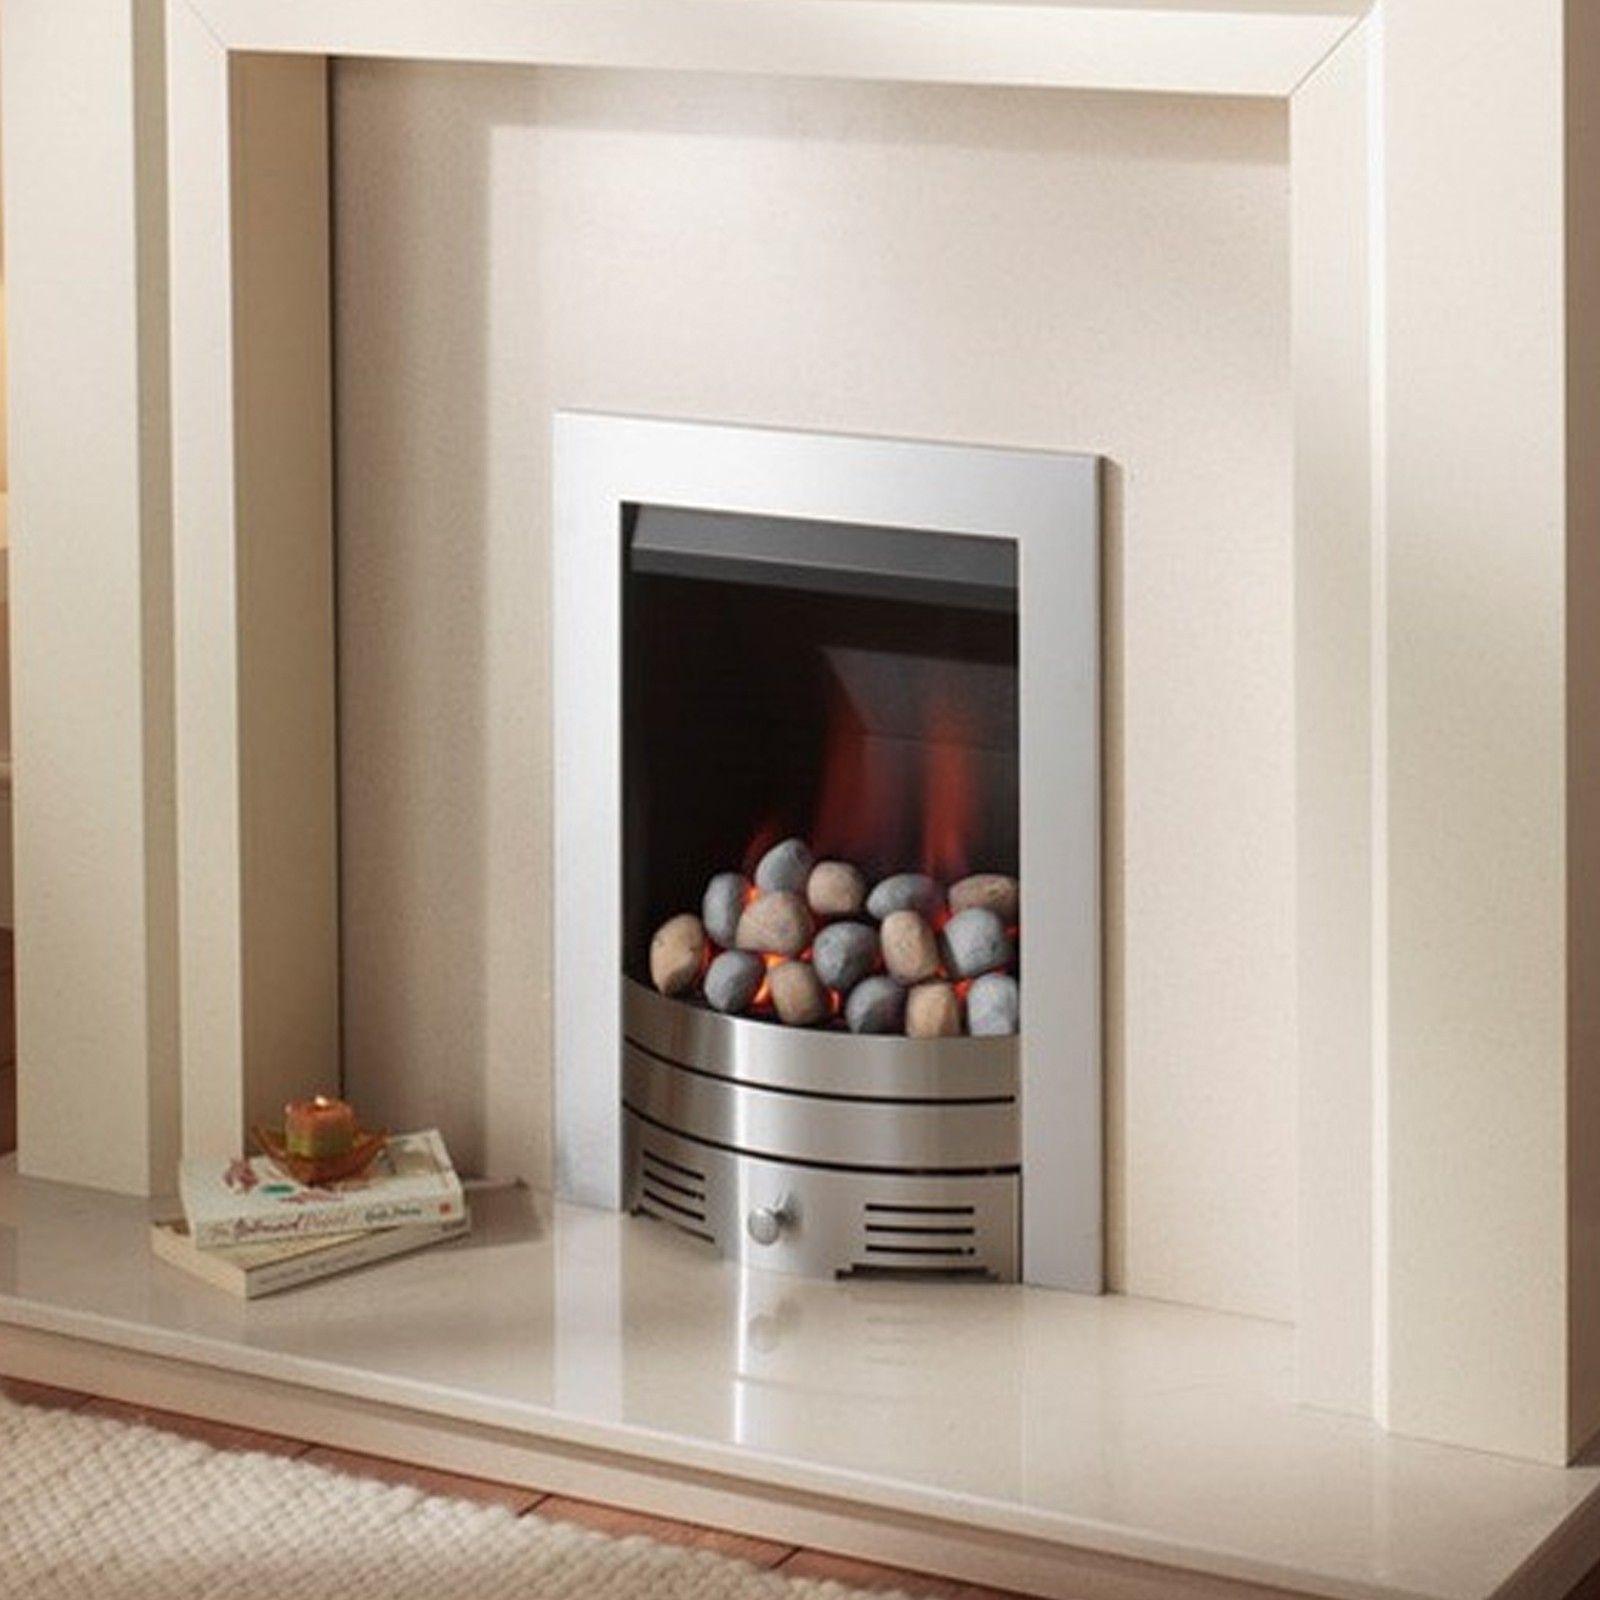 Chrome fire crystal fires slimline radiant contemporary for Modern gas fireplace price